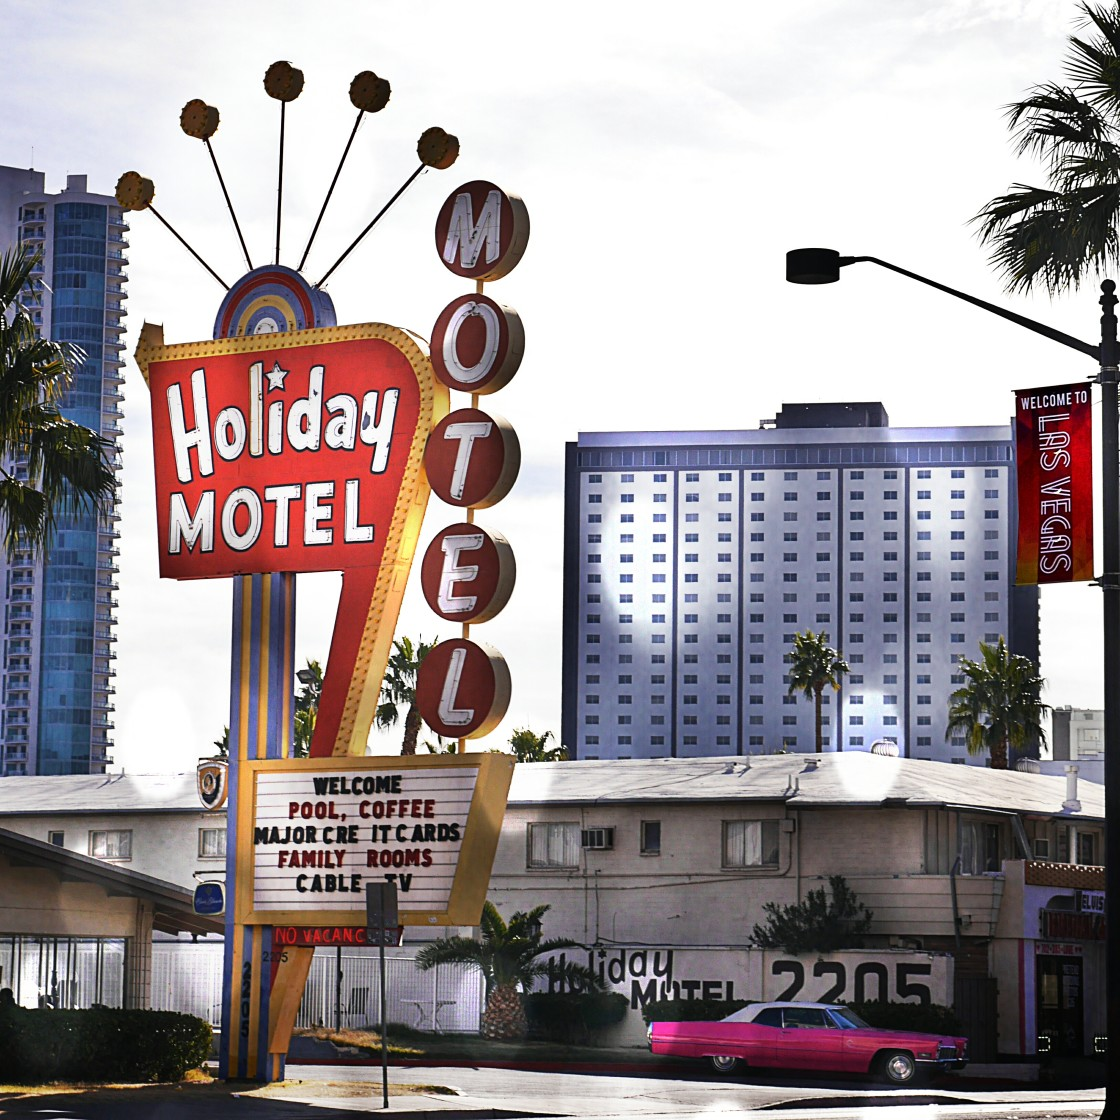 """Picure of the Holiday Motel on the Las Vegas Strip with Pink Cadillac."" stock image"